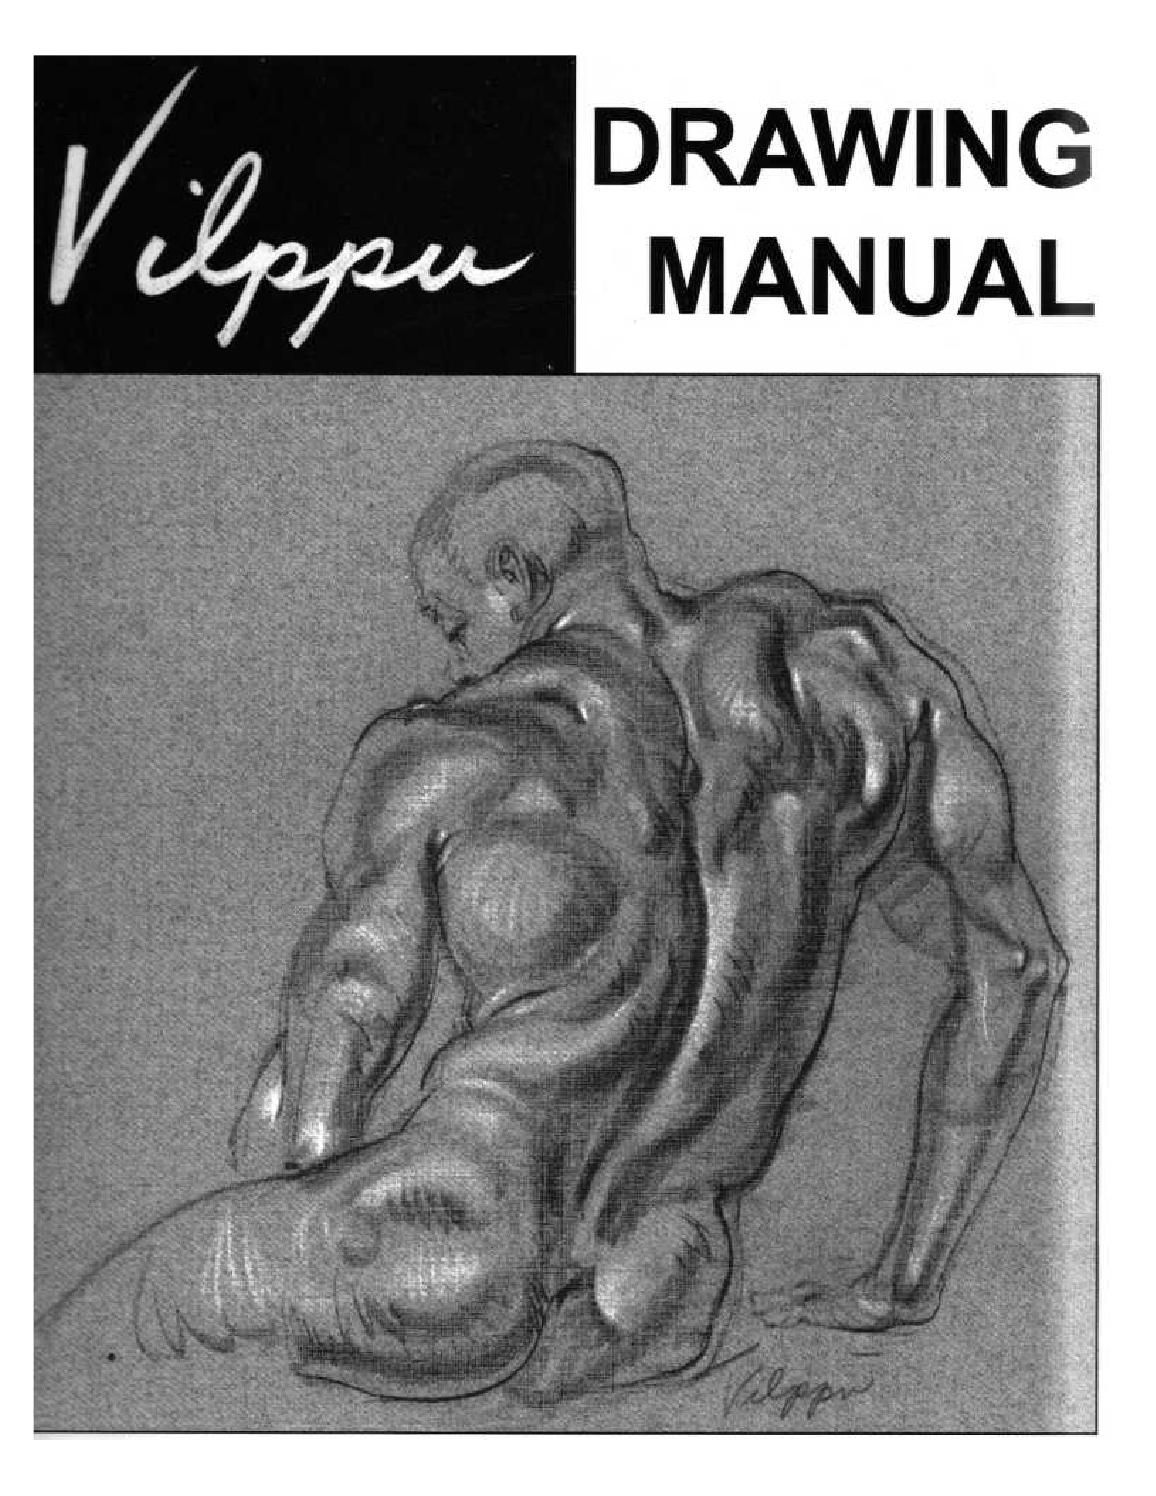 Vilppu manual de dibujo